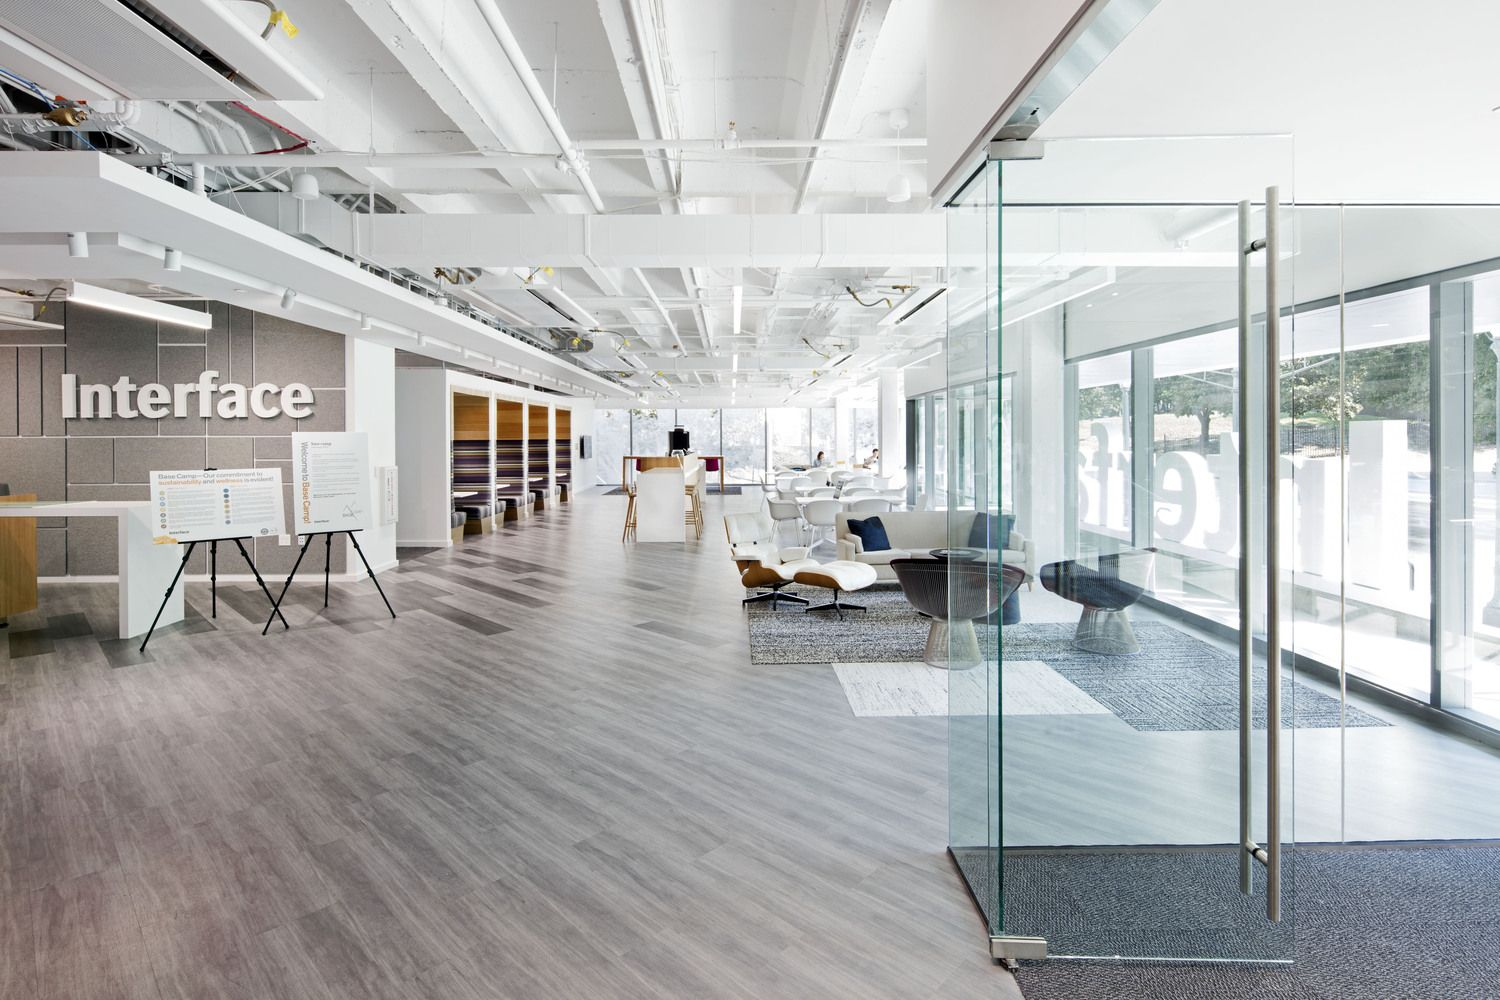 Gallery of interface headquarters perkinswill 13